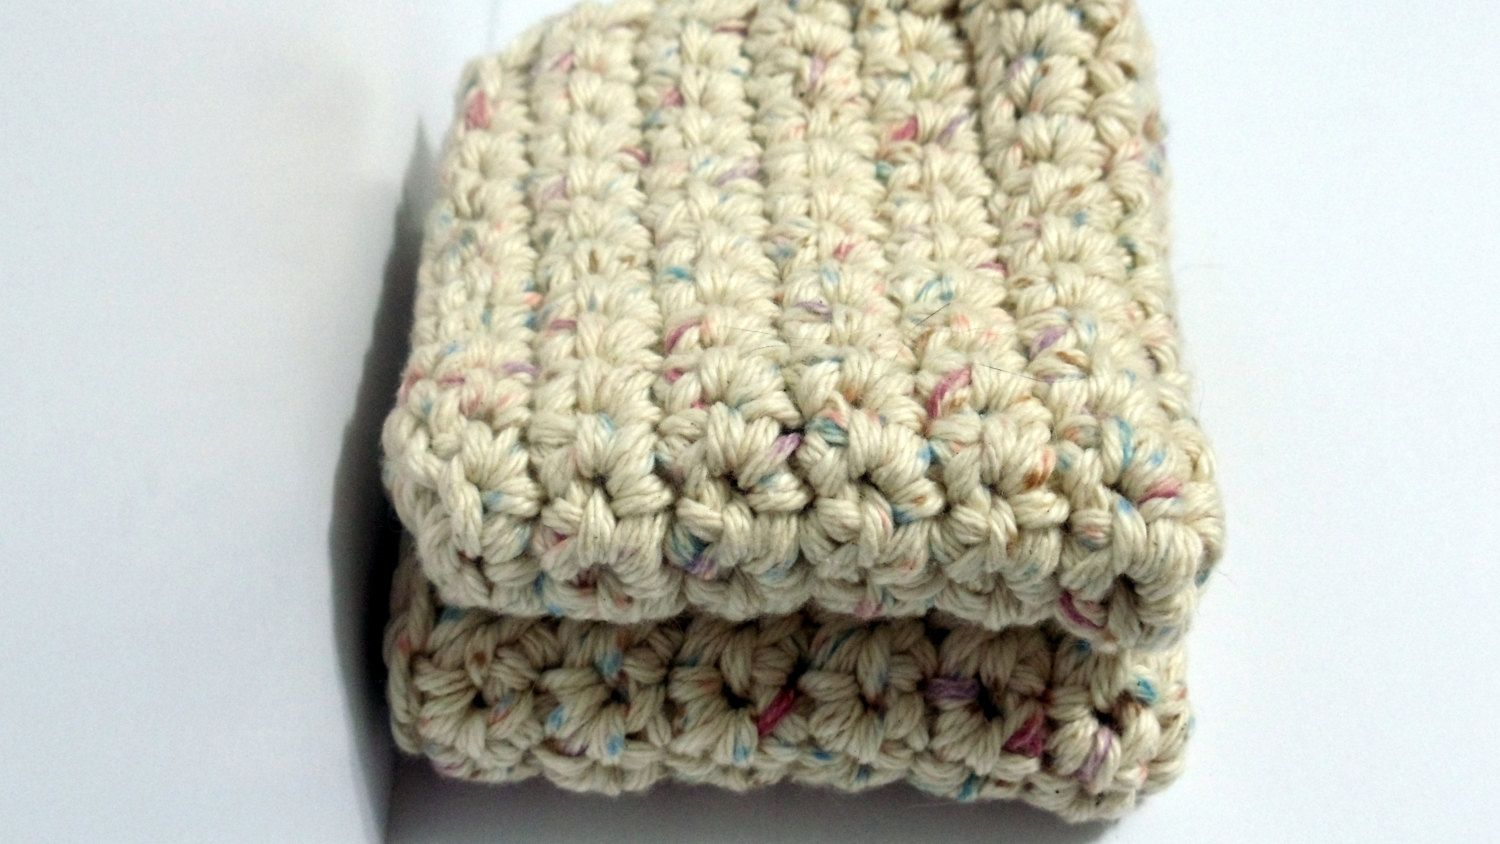 Country Specks Crochet Dish Cloth Hot Pad Pot Holder Cotton set of two